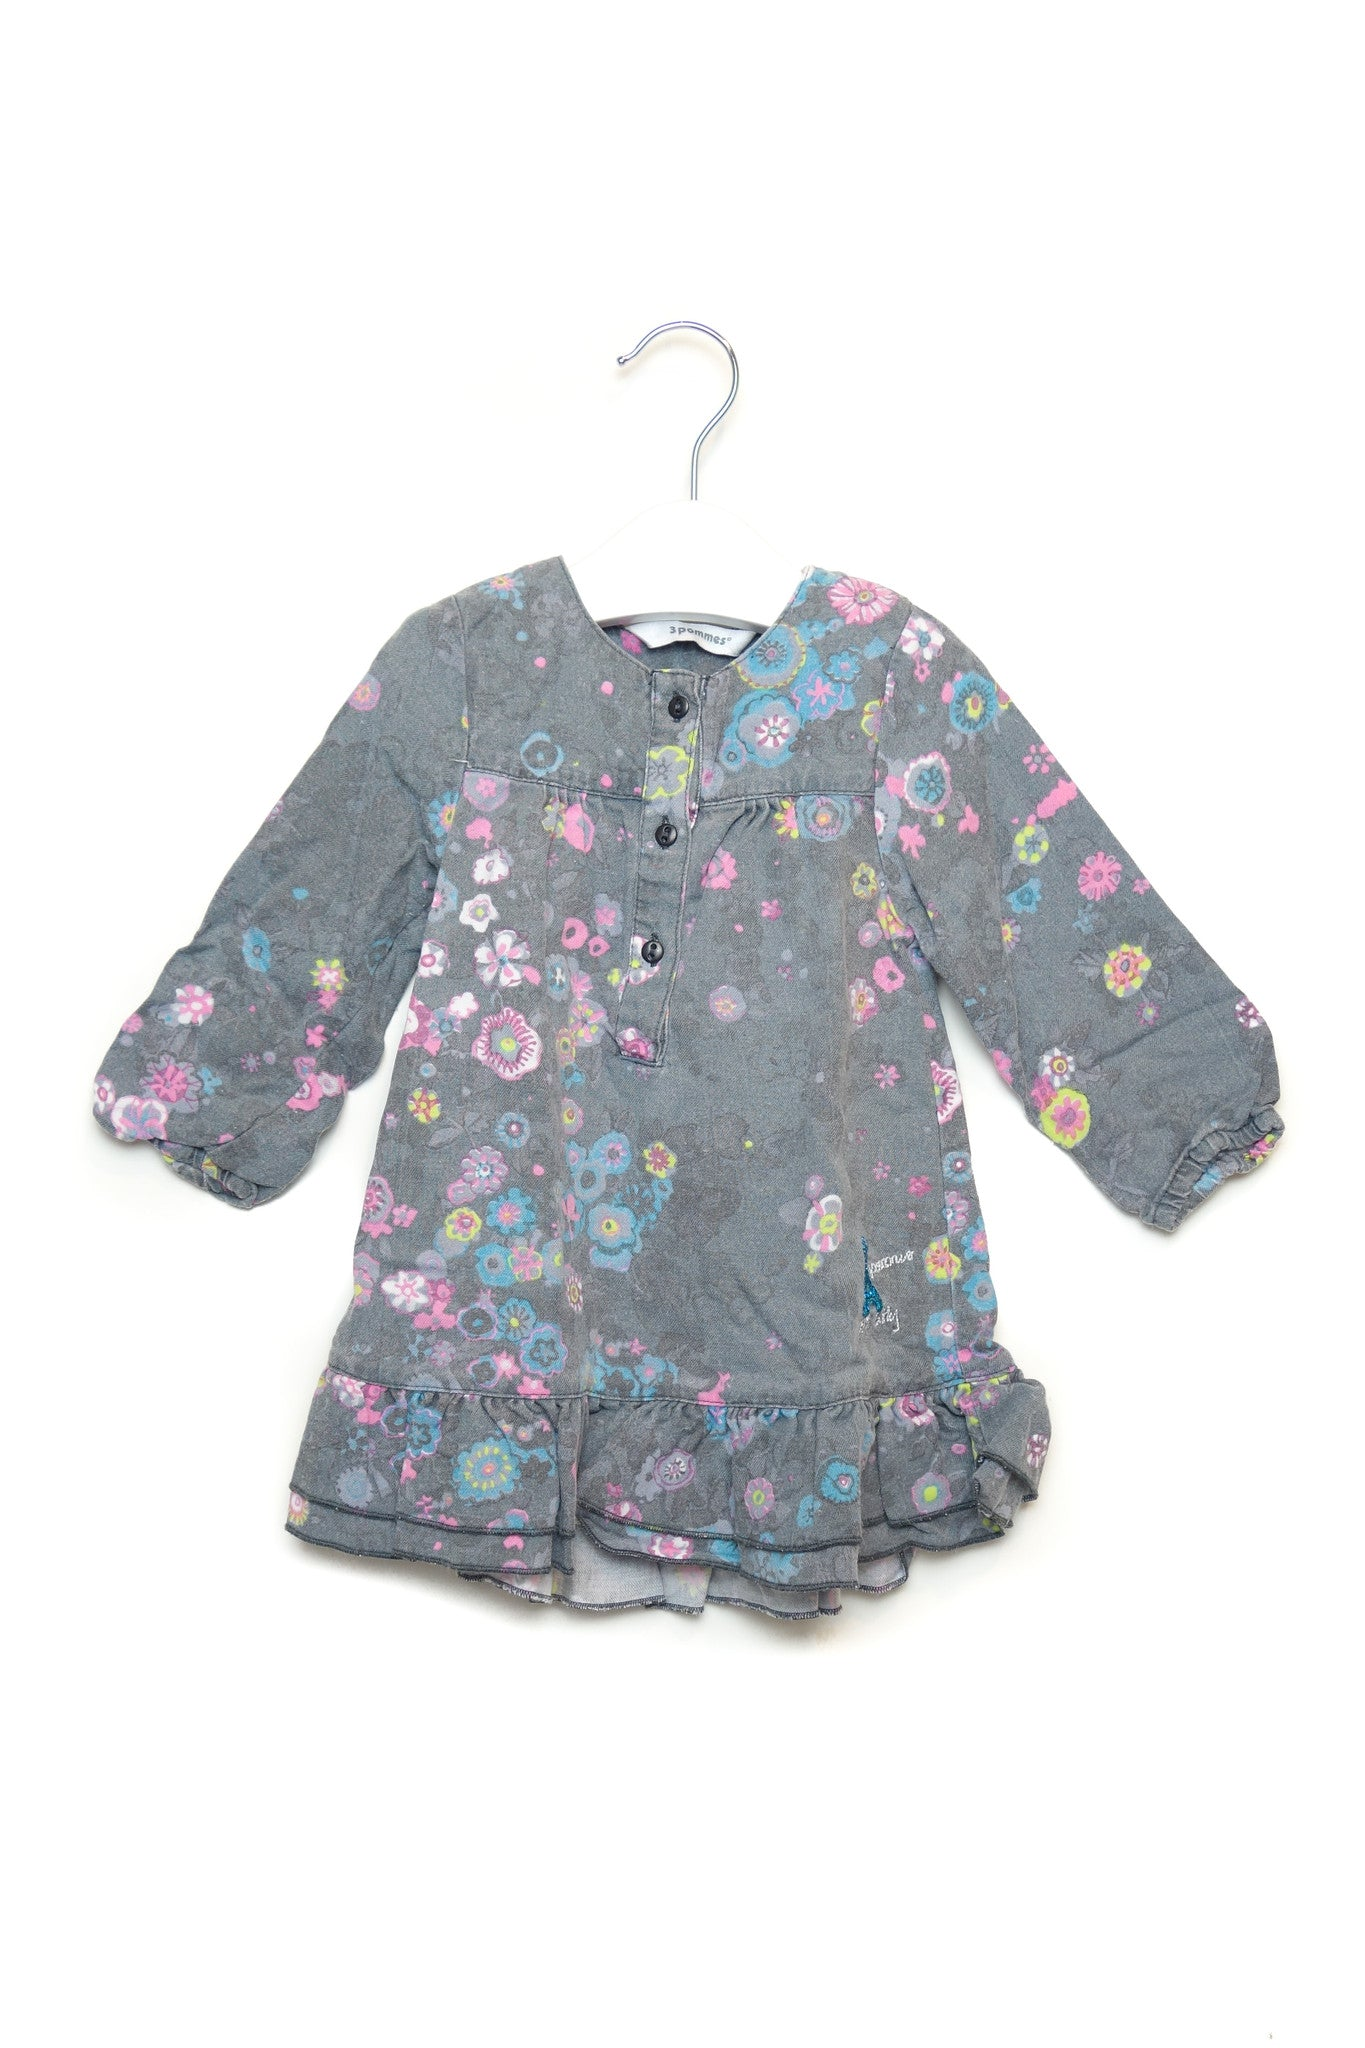 10001406~Dress 3-6M, 3 Pommes at Retykle - Online Baby & Kids Clothing Up to 90% Off